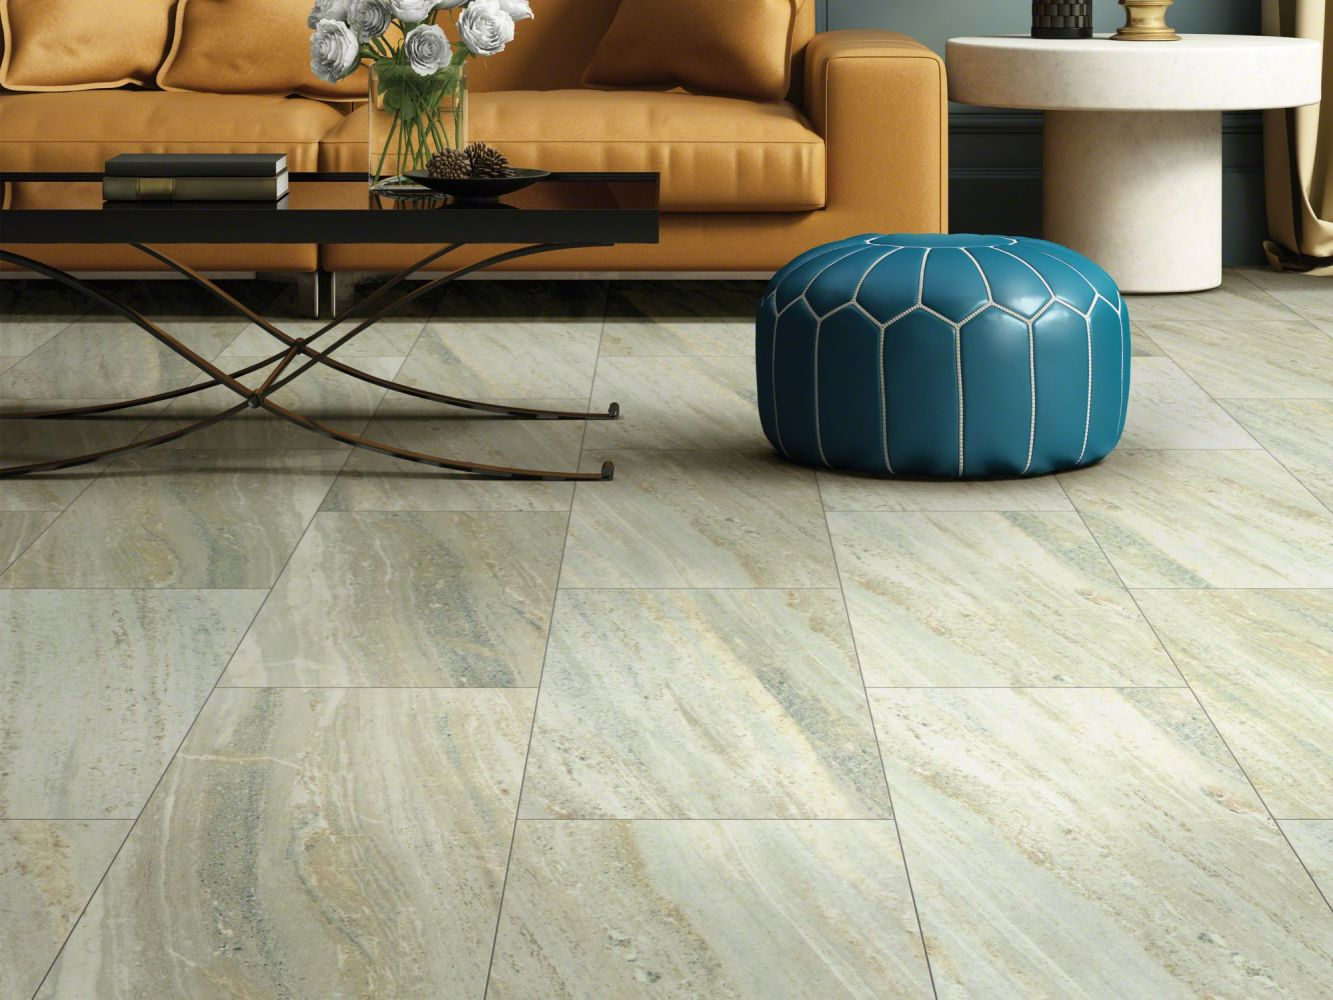 Shaw Floors Nfa HS Beaver Creek Tile Boulder 00585_VH546